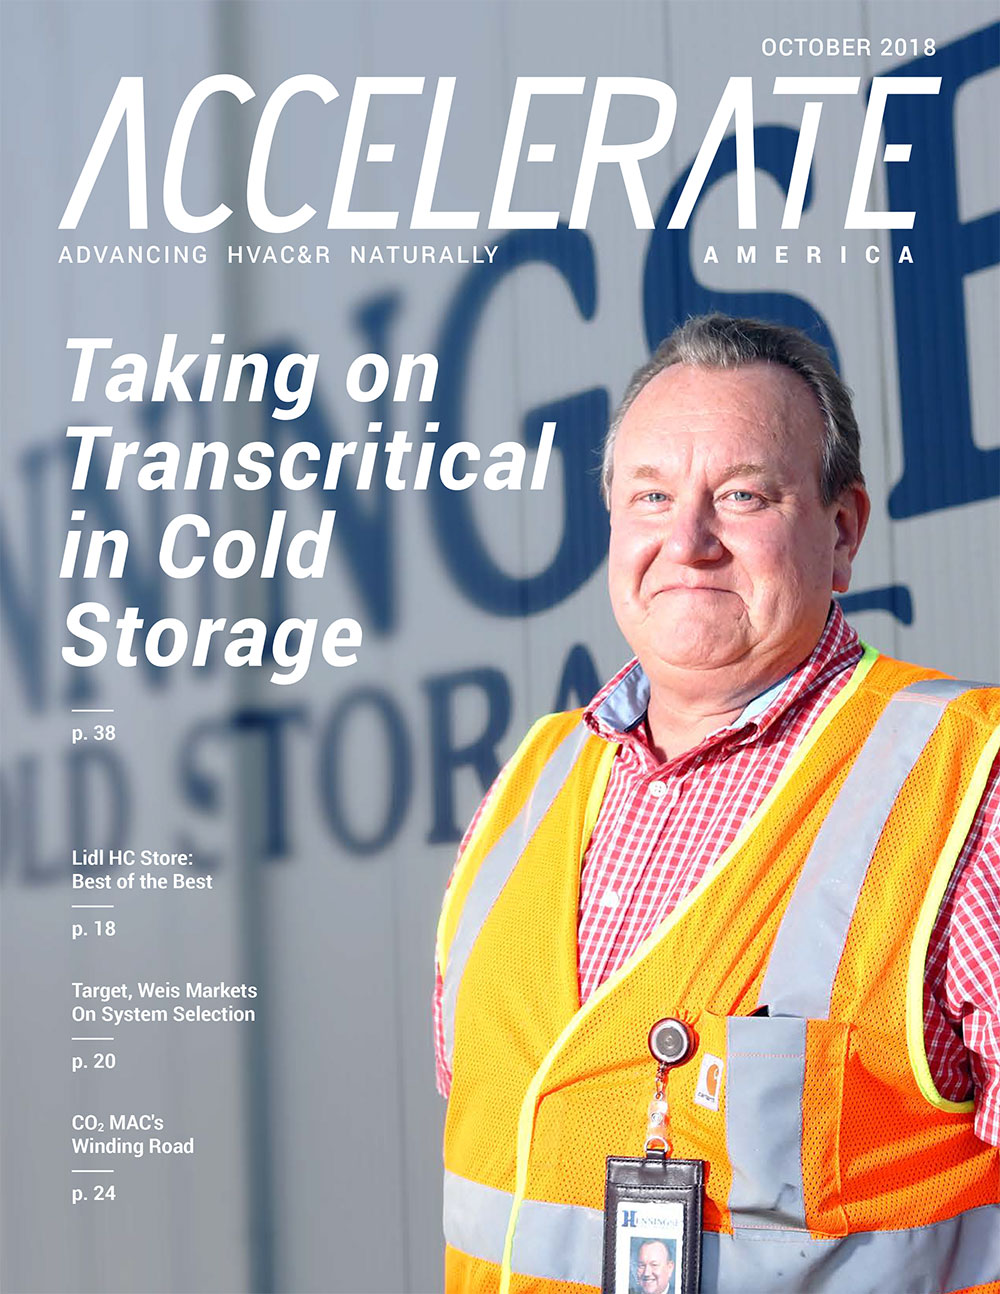 Taking on Transcritical in Cold Storage